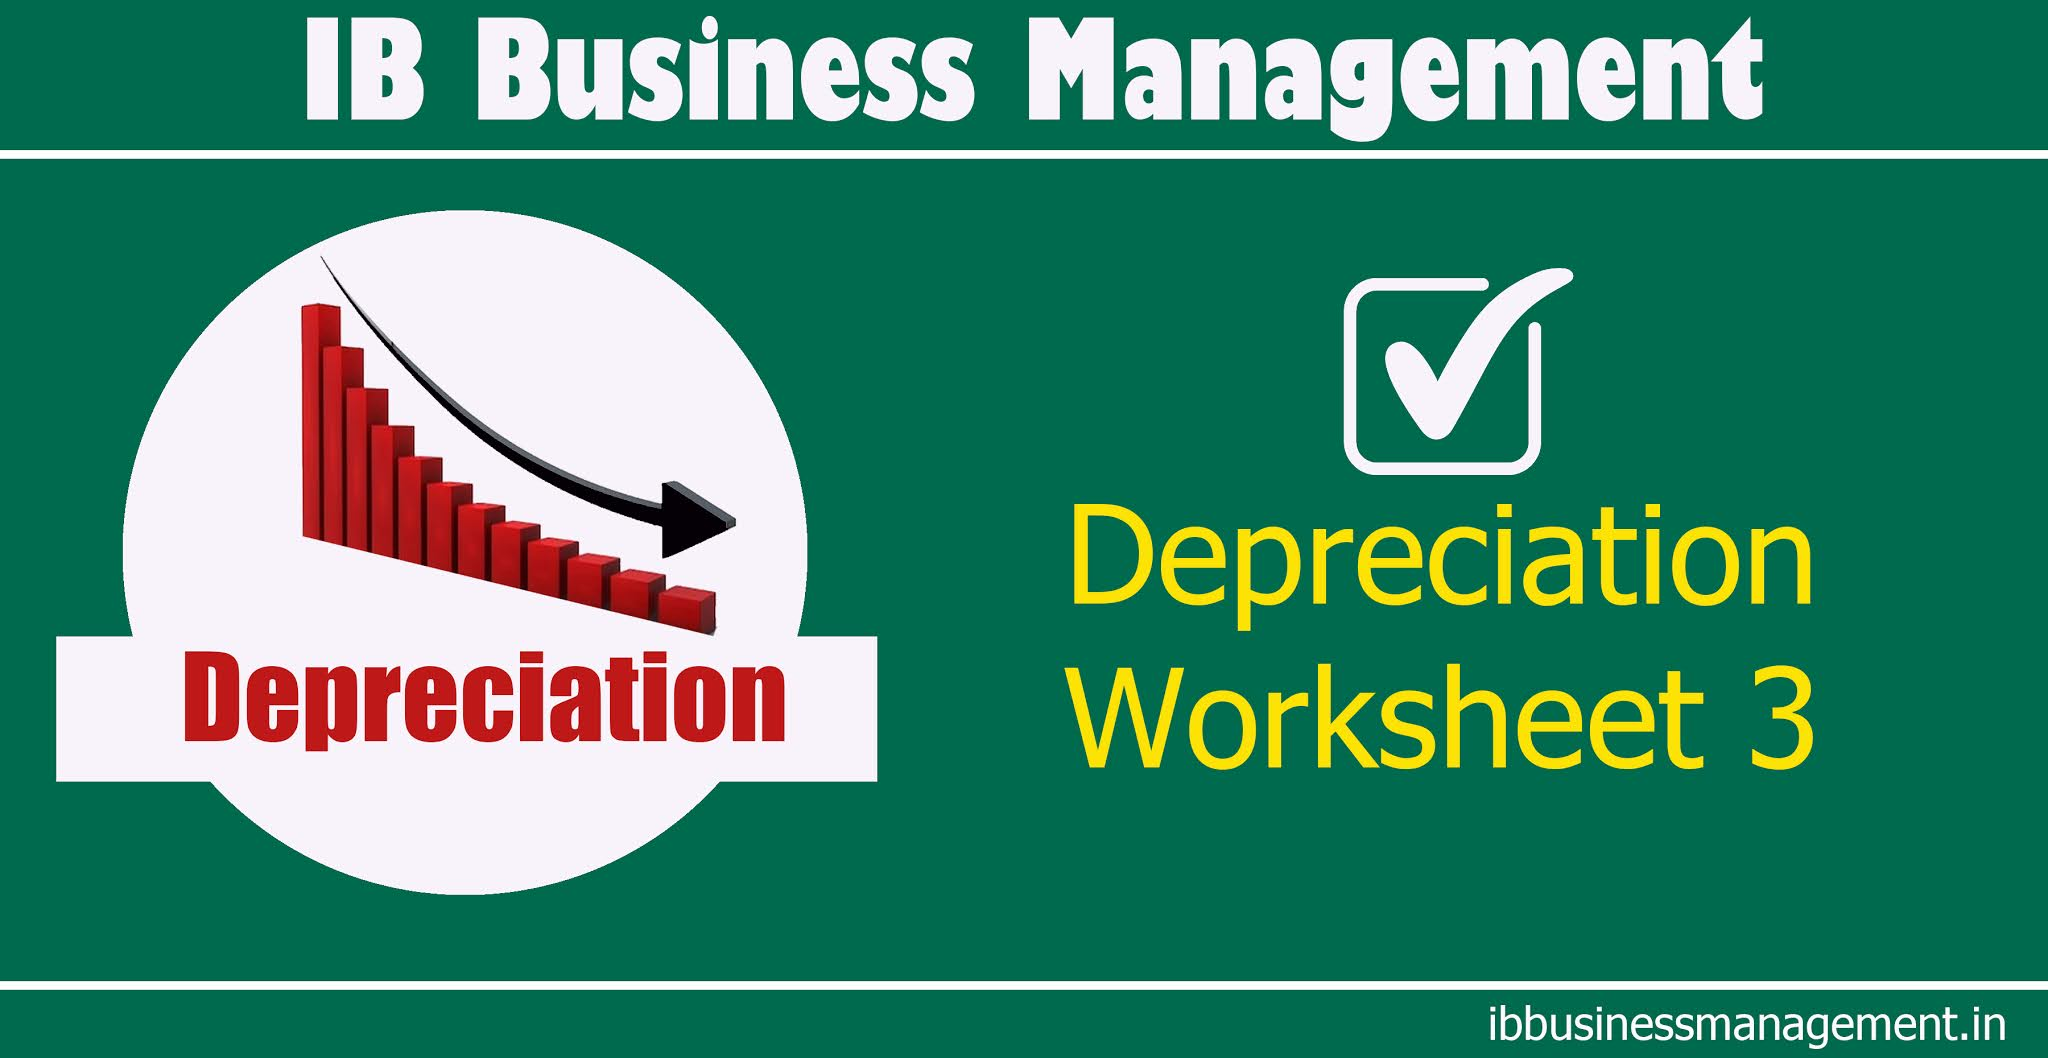 Business management worksheet